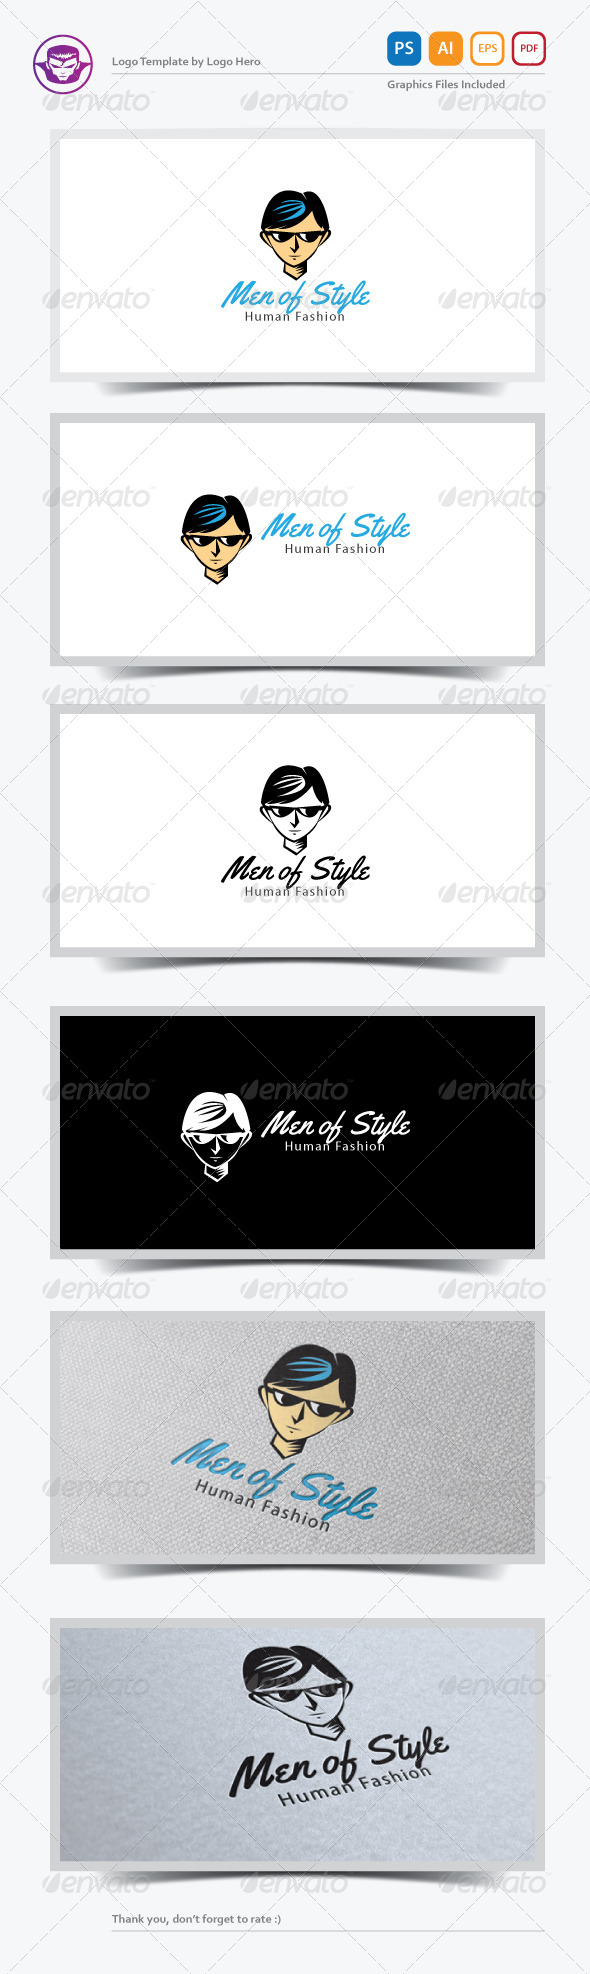 GraphicRiver Men of Style Logo Template 7170593